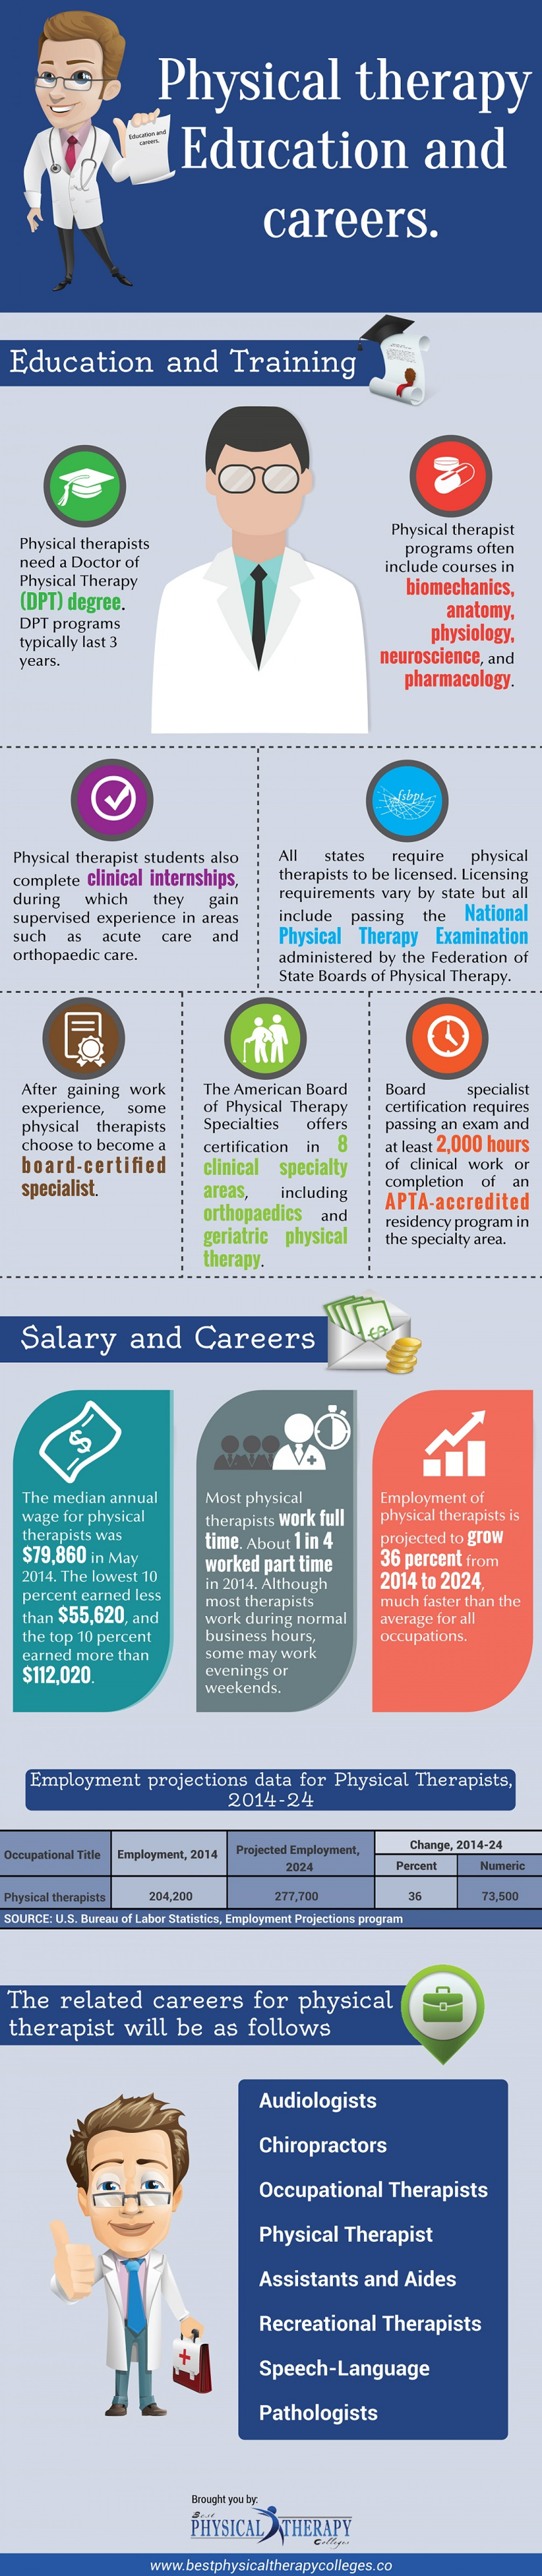 Careers in physical therapy - Physical Therapy Education And Careers Infographic